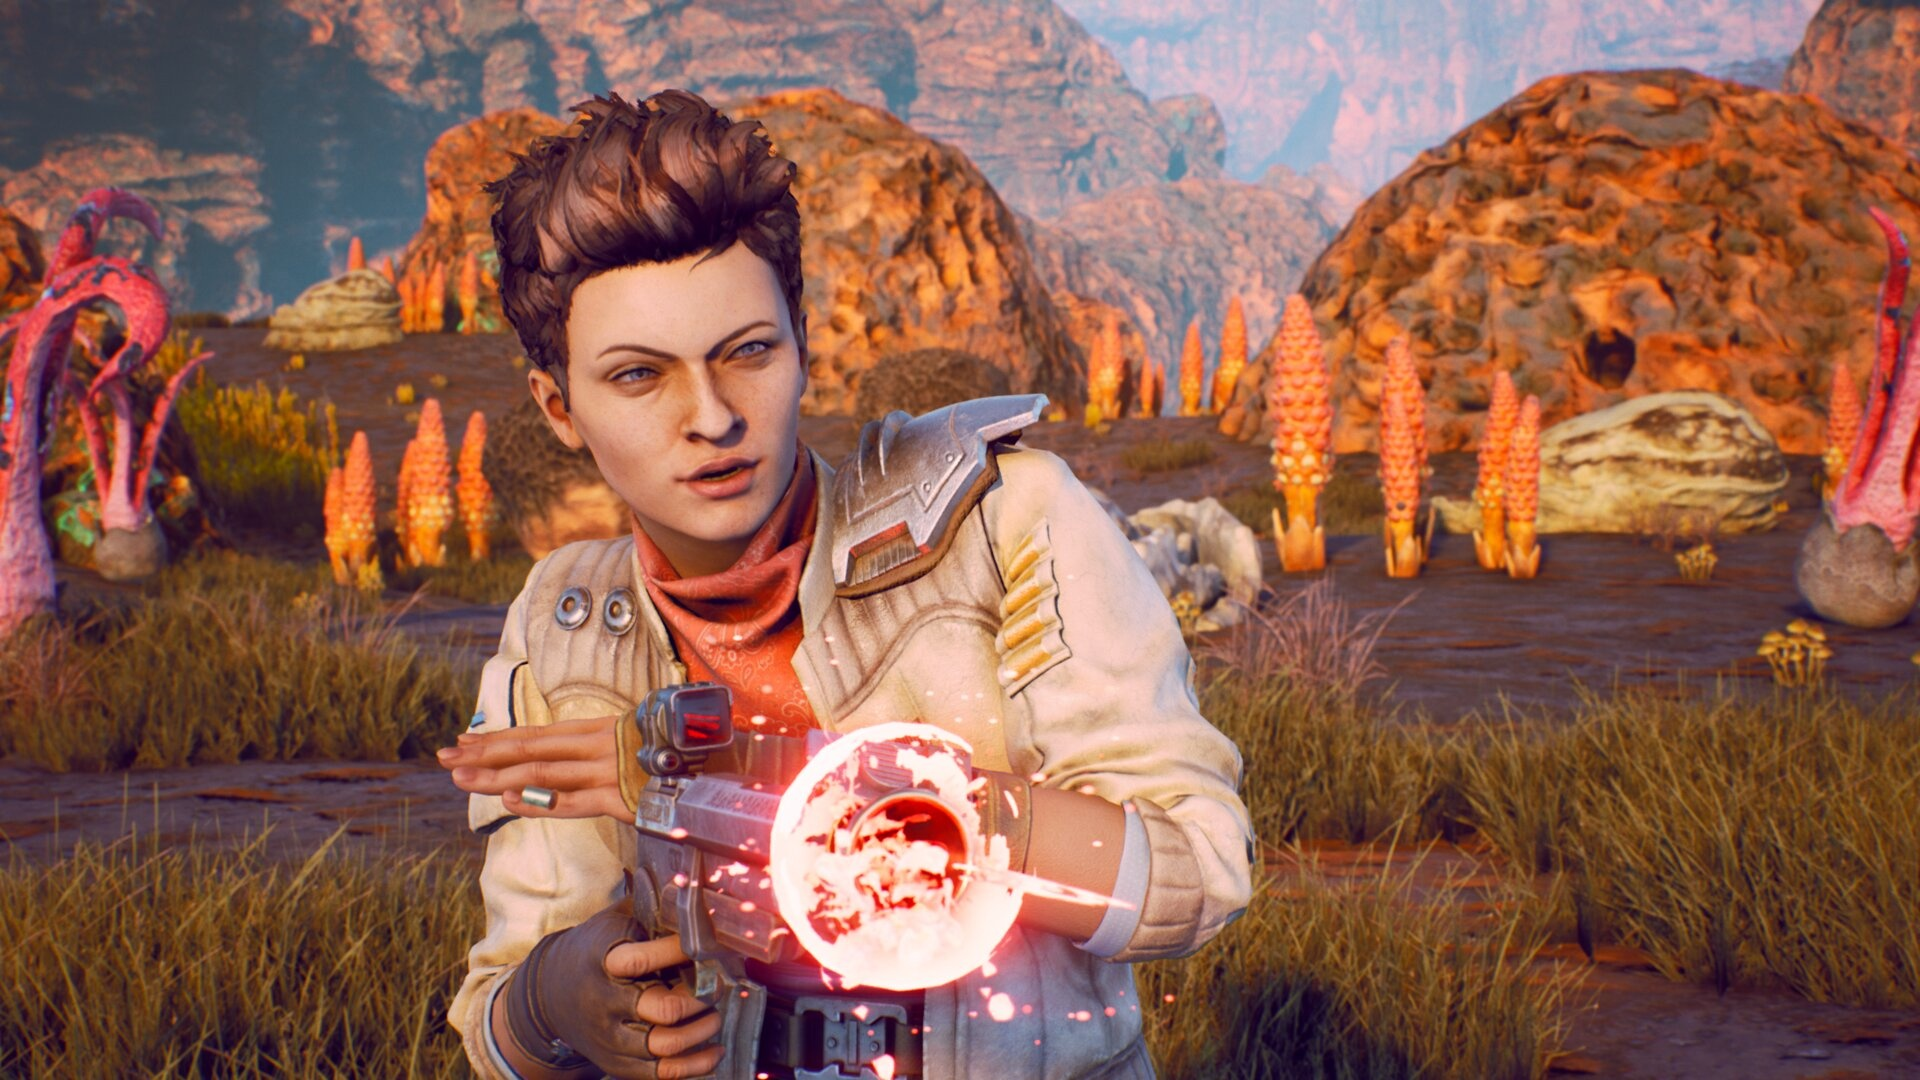 E3 2019: Превью The Outer Worlds. Консервы из свиных опухолей